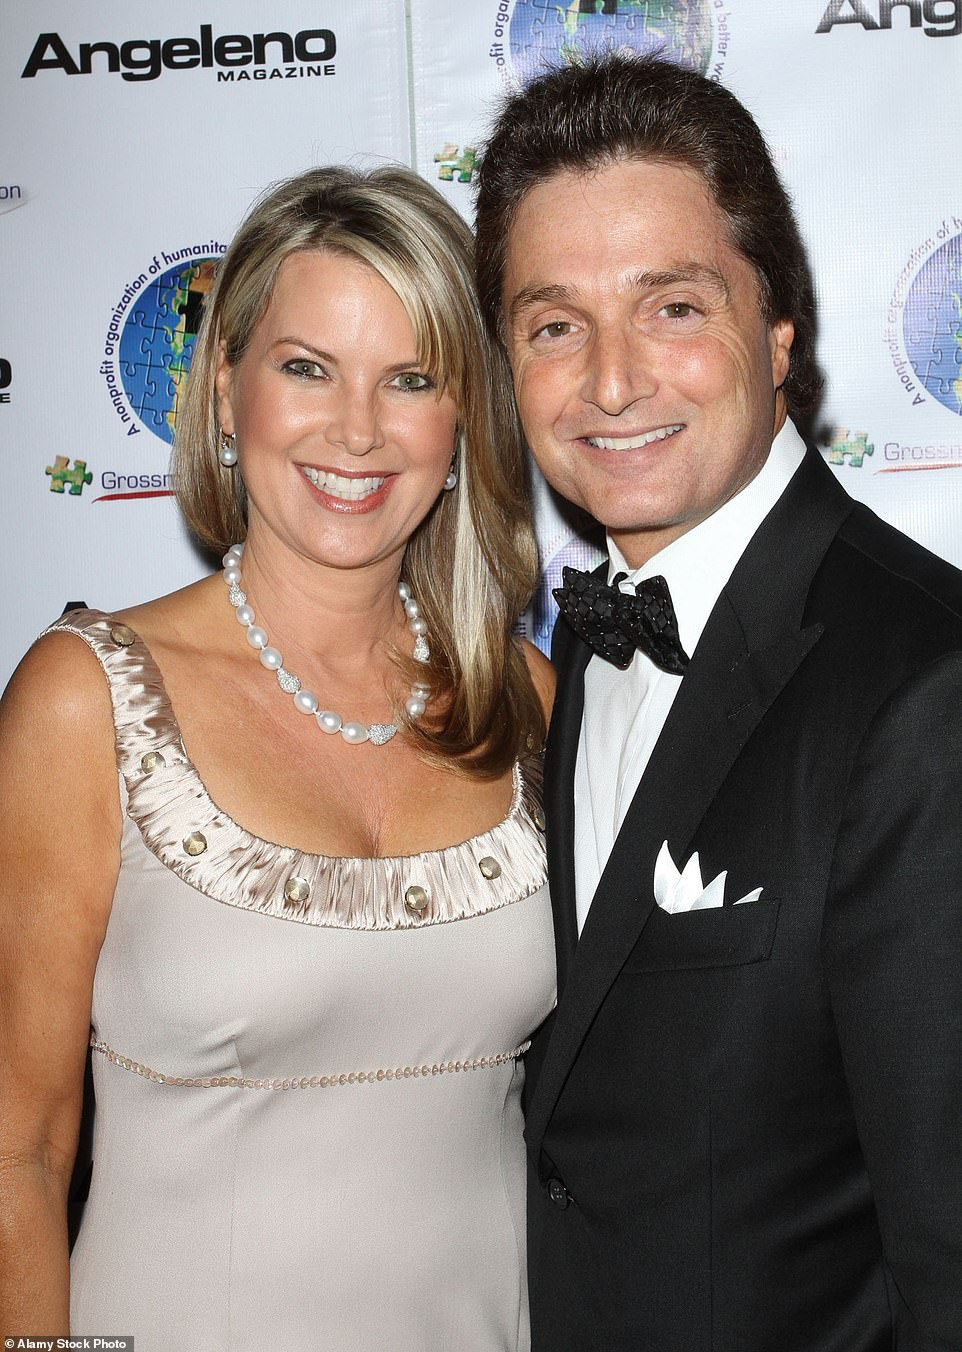 Rebecca and her surgeon husband Dr. Peter Grossman pictured together above